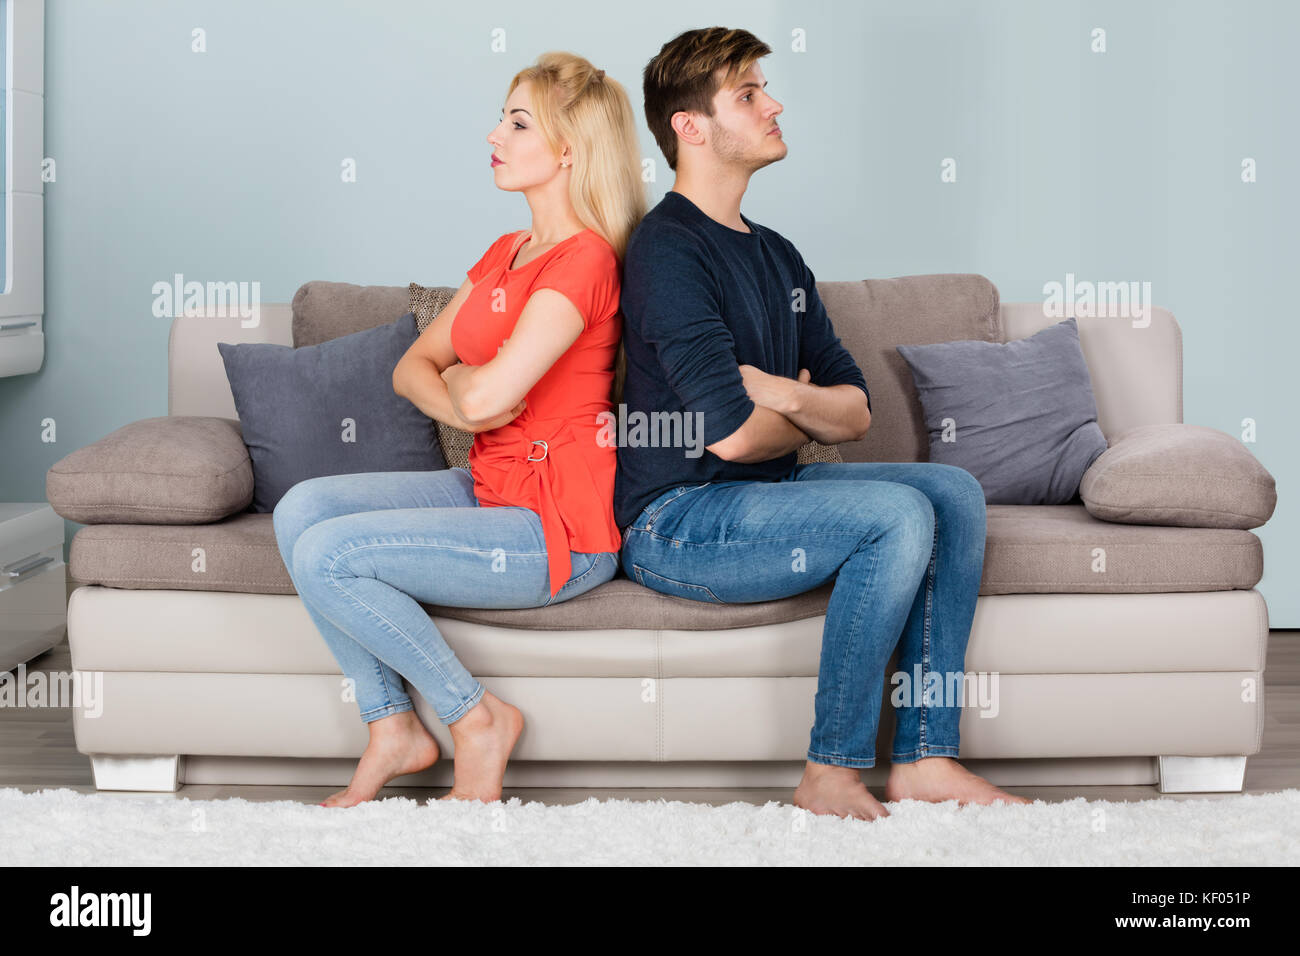 Young Sad Couple In Fight With Arms Crossed Sitting On Sofa After Quarrel At Home - Stock Image